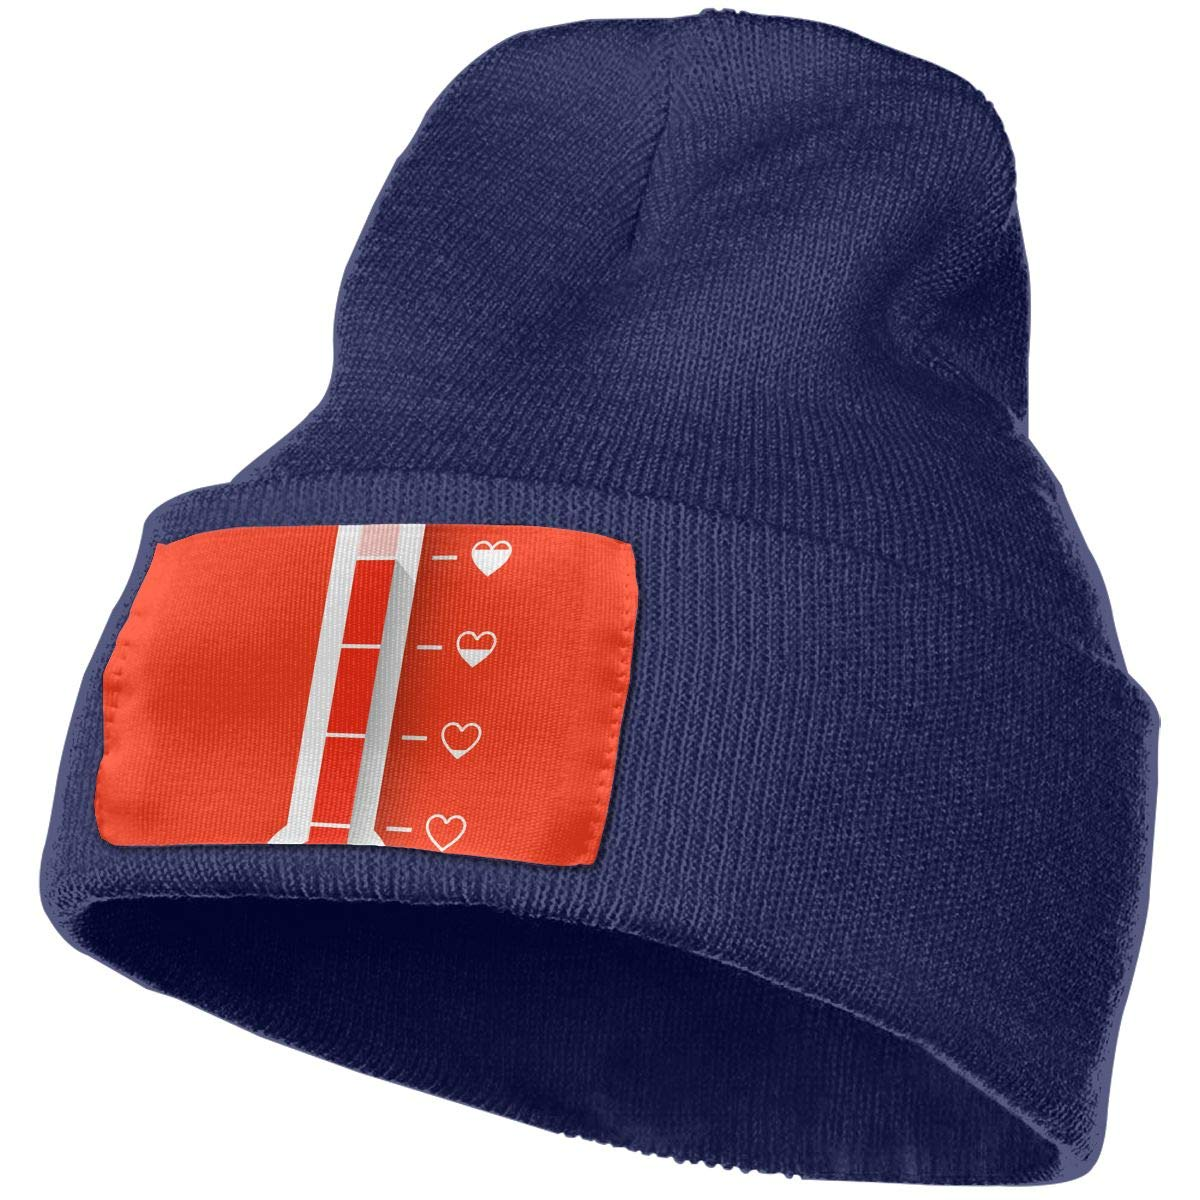 Love Thermometer Valentines Unisex Fashion Knitted Hat Luxury Hip-Hop Cap